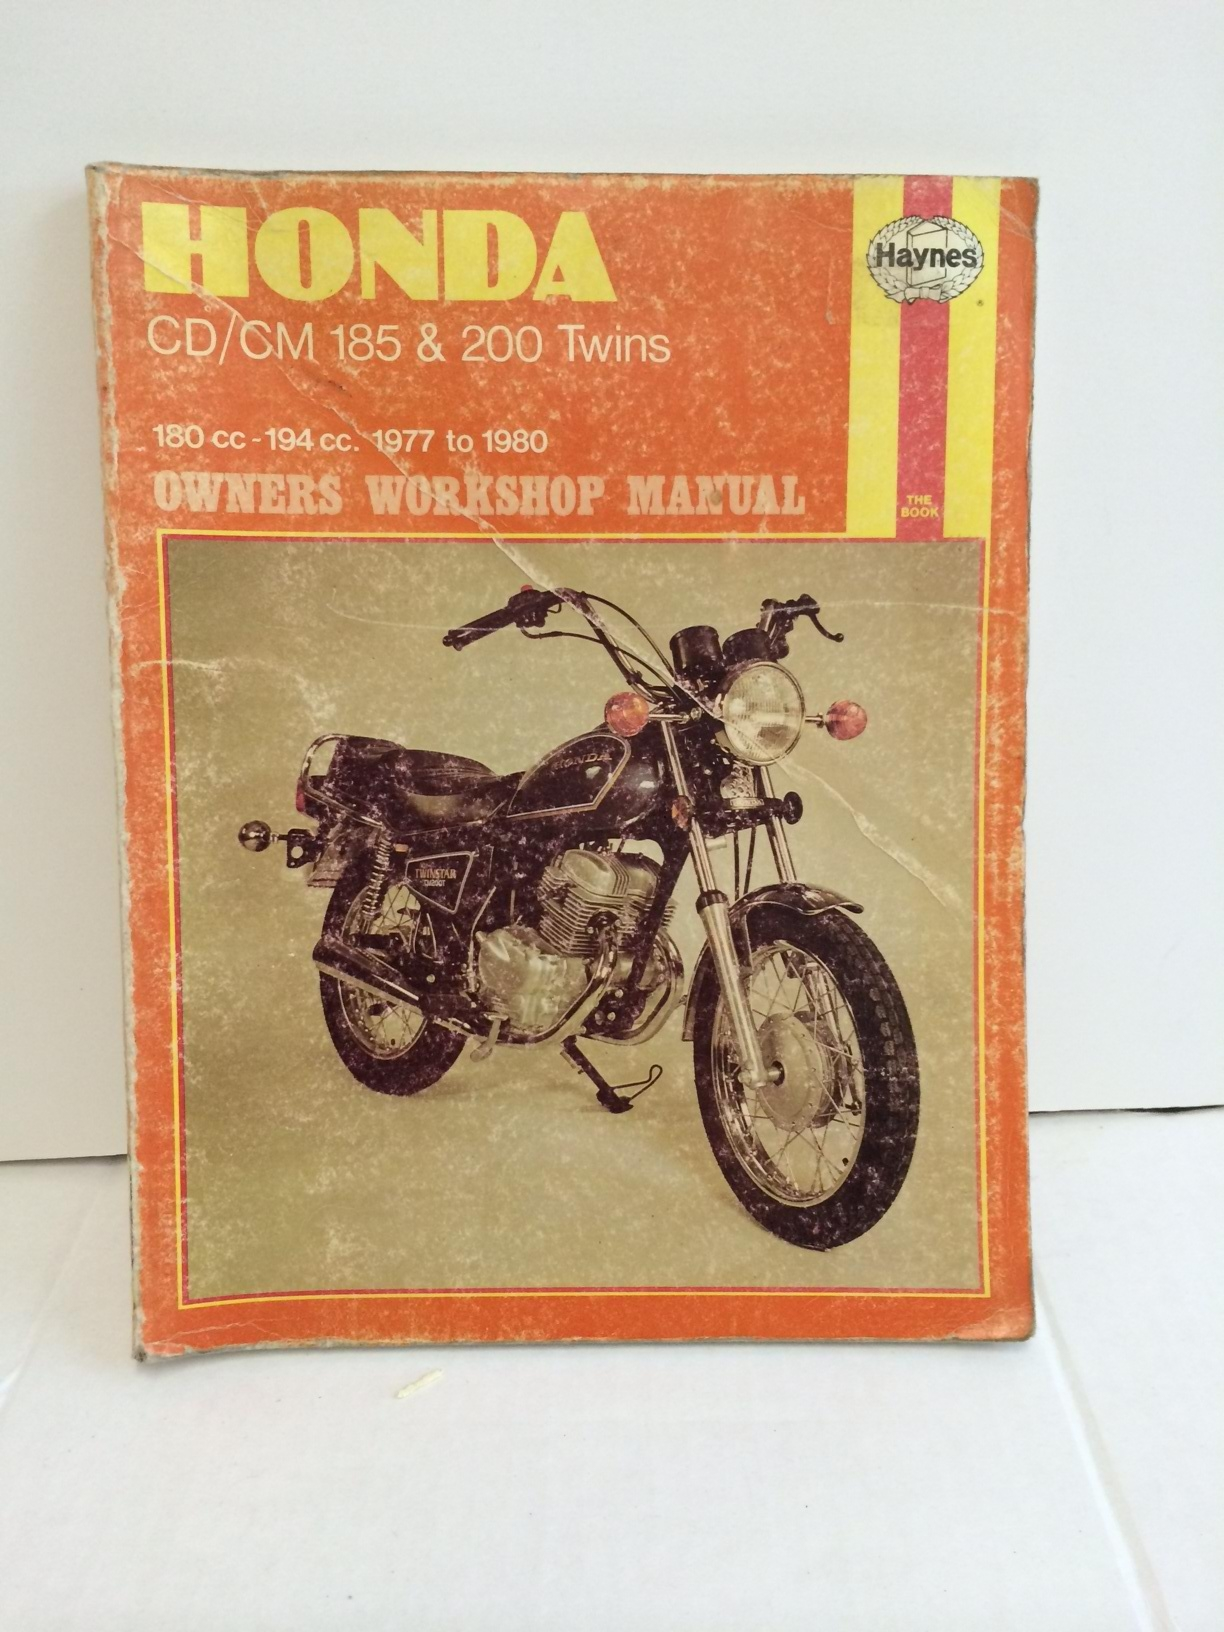 Wiring Diagram Honda Wiring Diagram Honda Xr 200 Wiring Diagram Honda